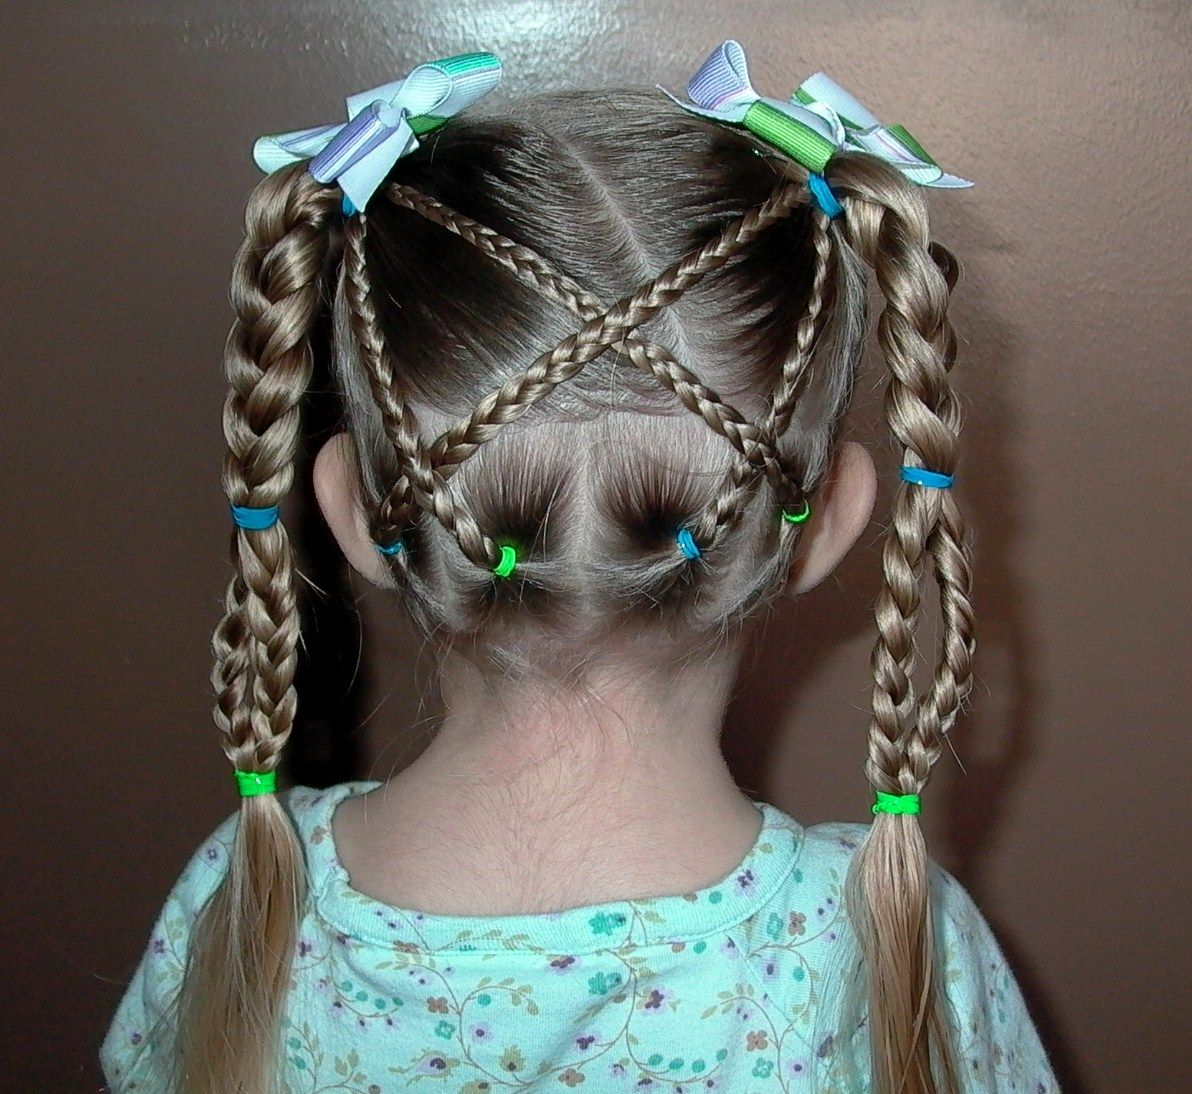 Pleasing Hair Styles Little Girls Borbotta Com Short Hairstyles Gunalazisus